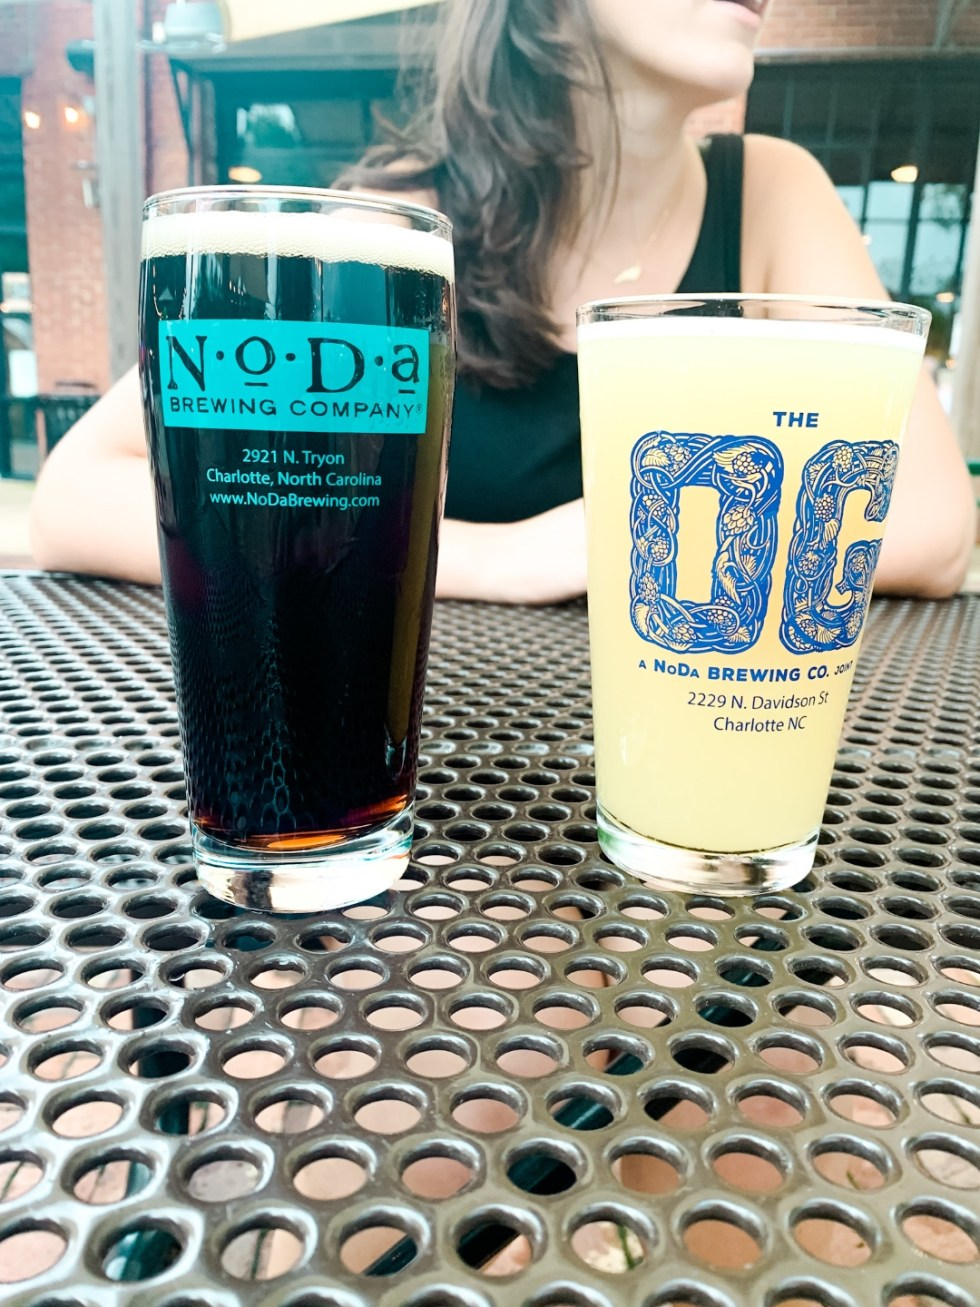 Weekend in Charlotte: Best Breweries and Places to Eat - I'm Fixin' To - @mbg0112 | Weekend in Charlotte by popular N.C. travel blog, I'm Fixin' To: image of a woman sitting in front of two glasses of beer at NoDa Brewing Company.